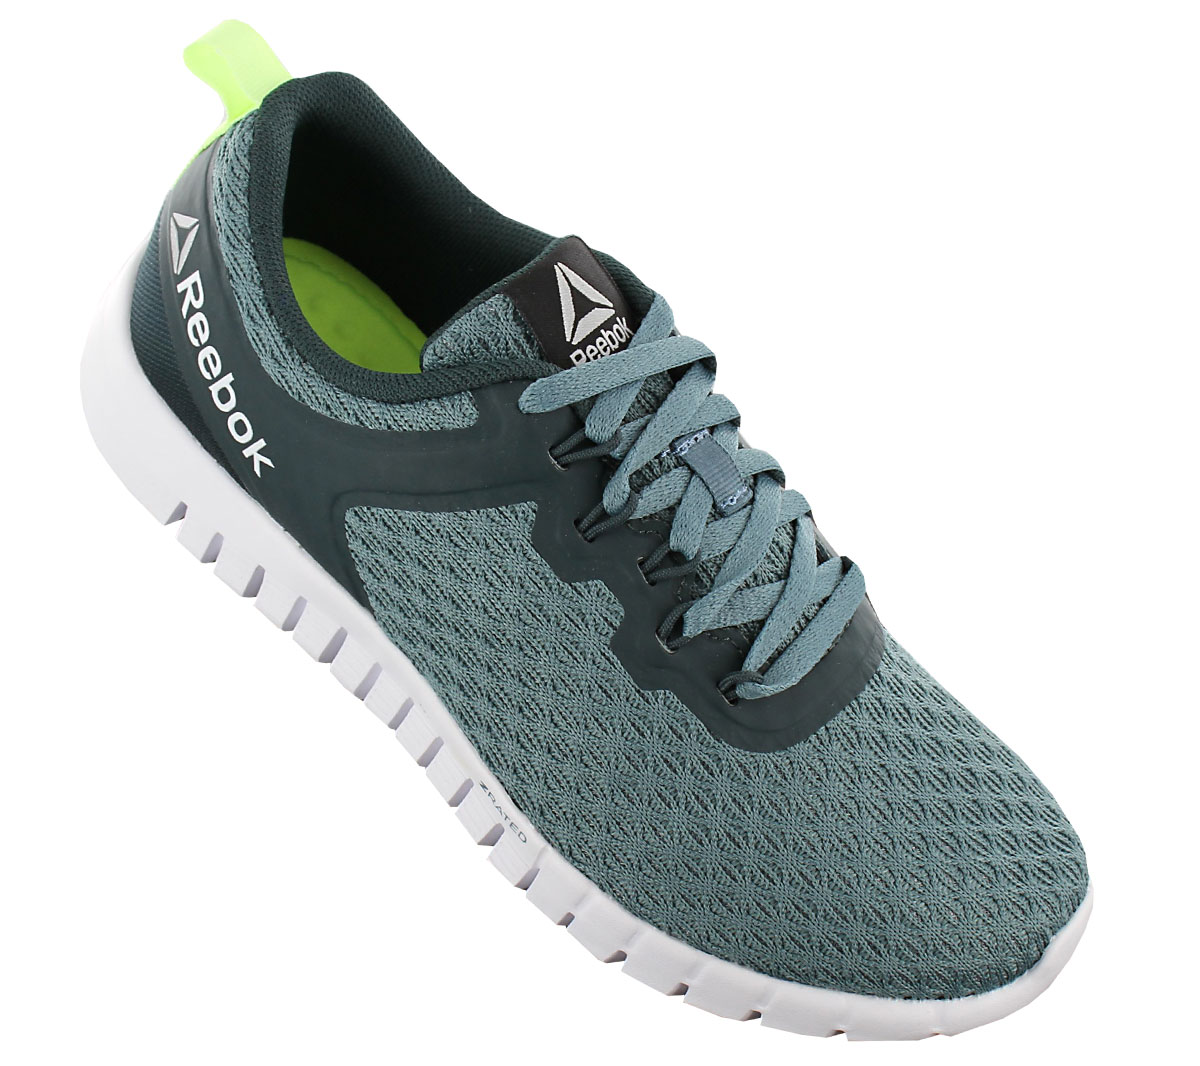 9a9cd7a9e64 Reebok Zquick Lite Ladies Running Shoes Fitness Shoes Trainers ...